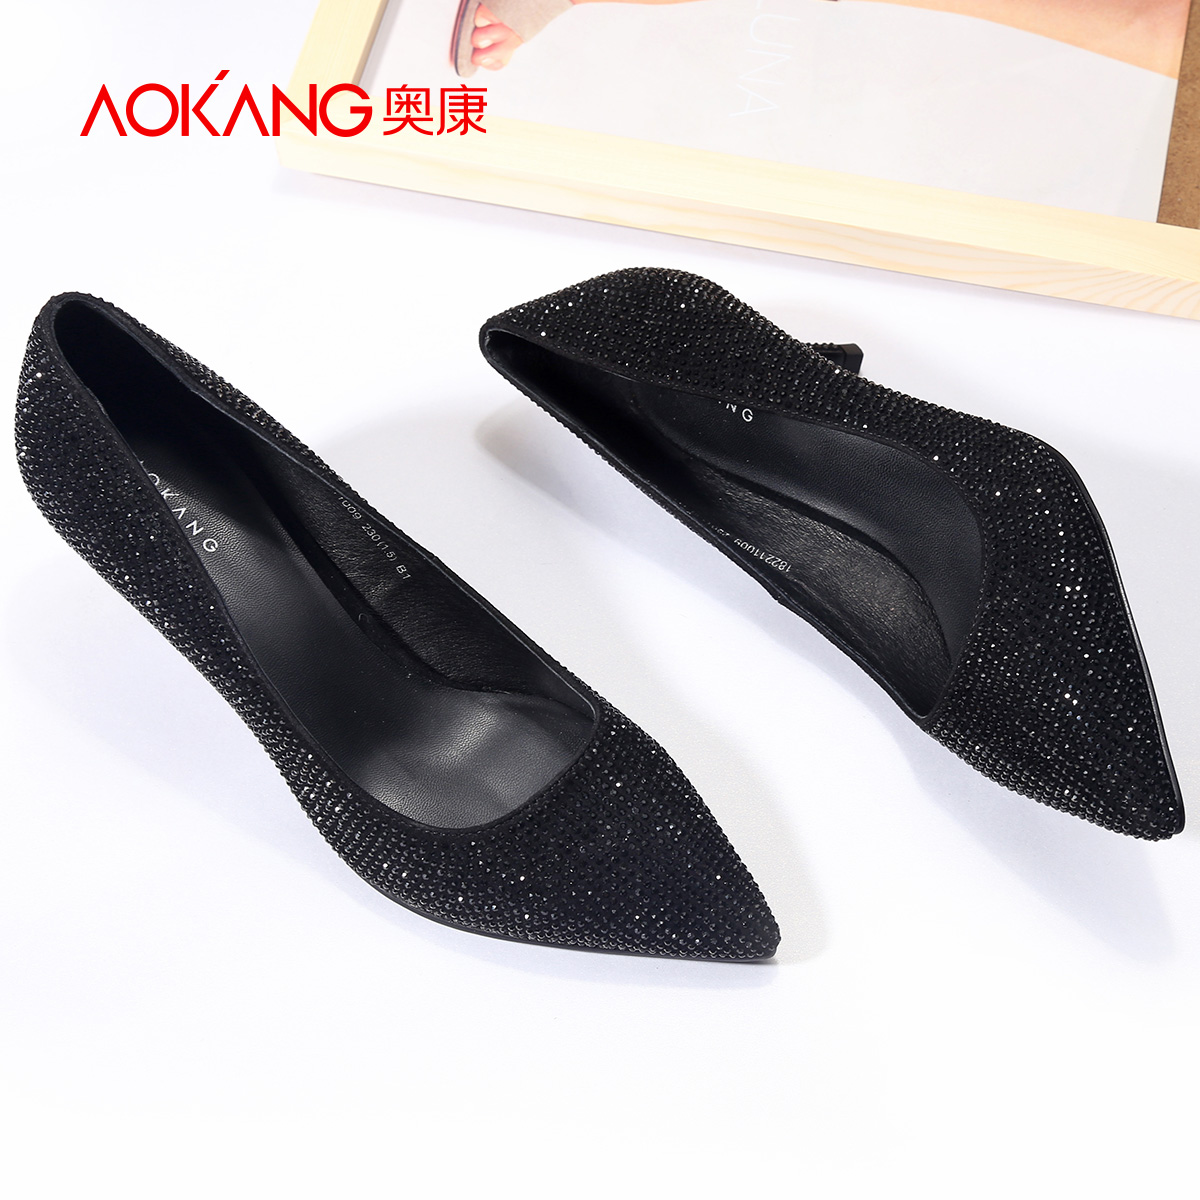 Aokang new boutique women's shoes pointed high heels rhinestones black business shoes banquet shoes fashion fine with single shoes